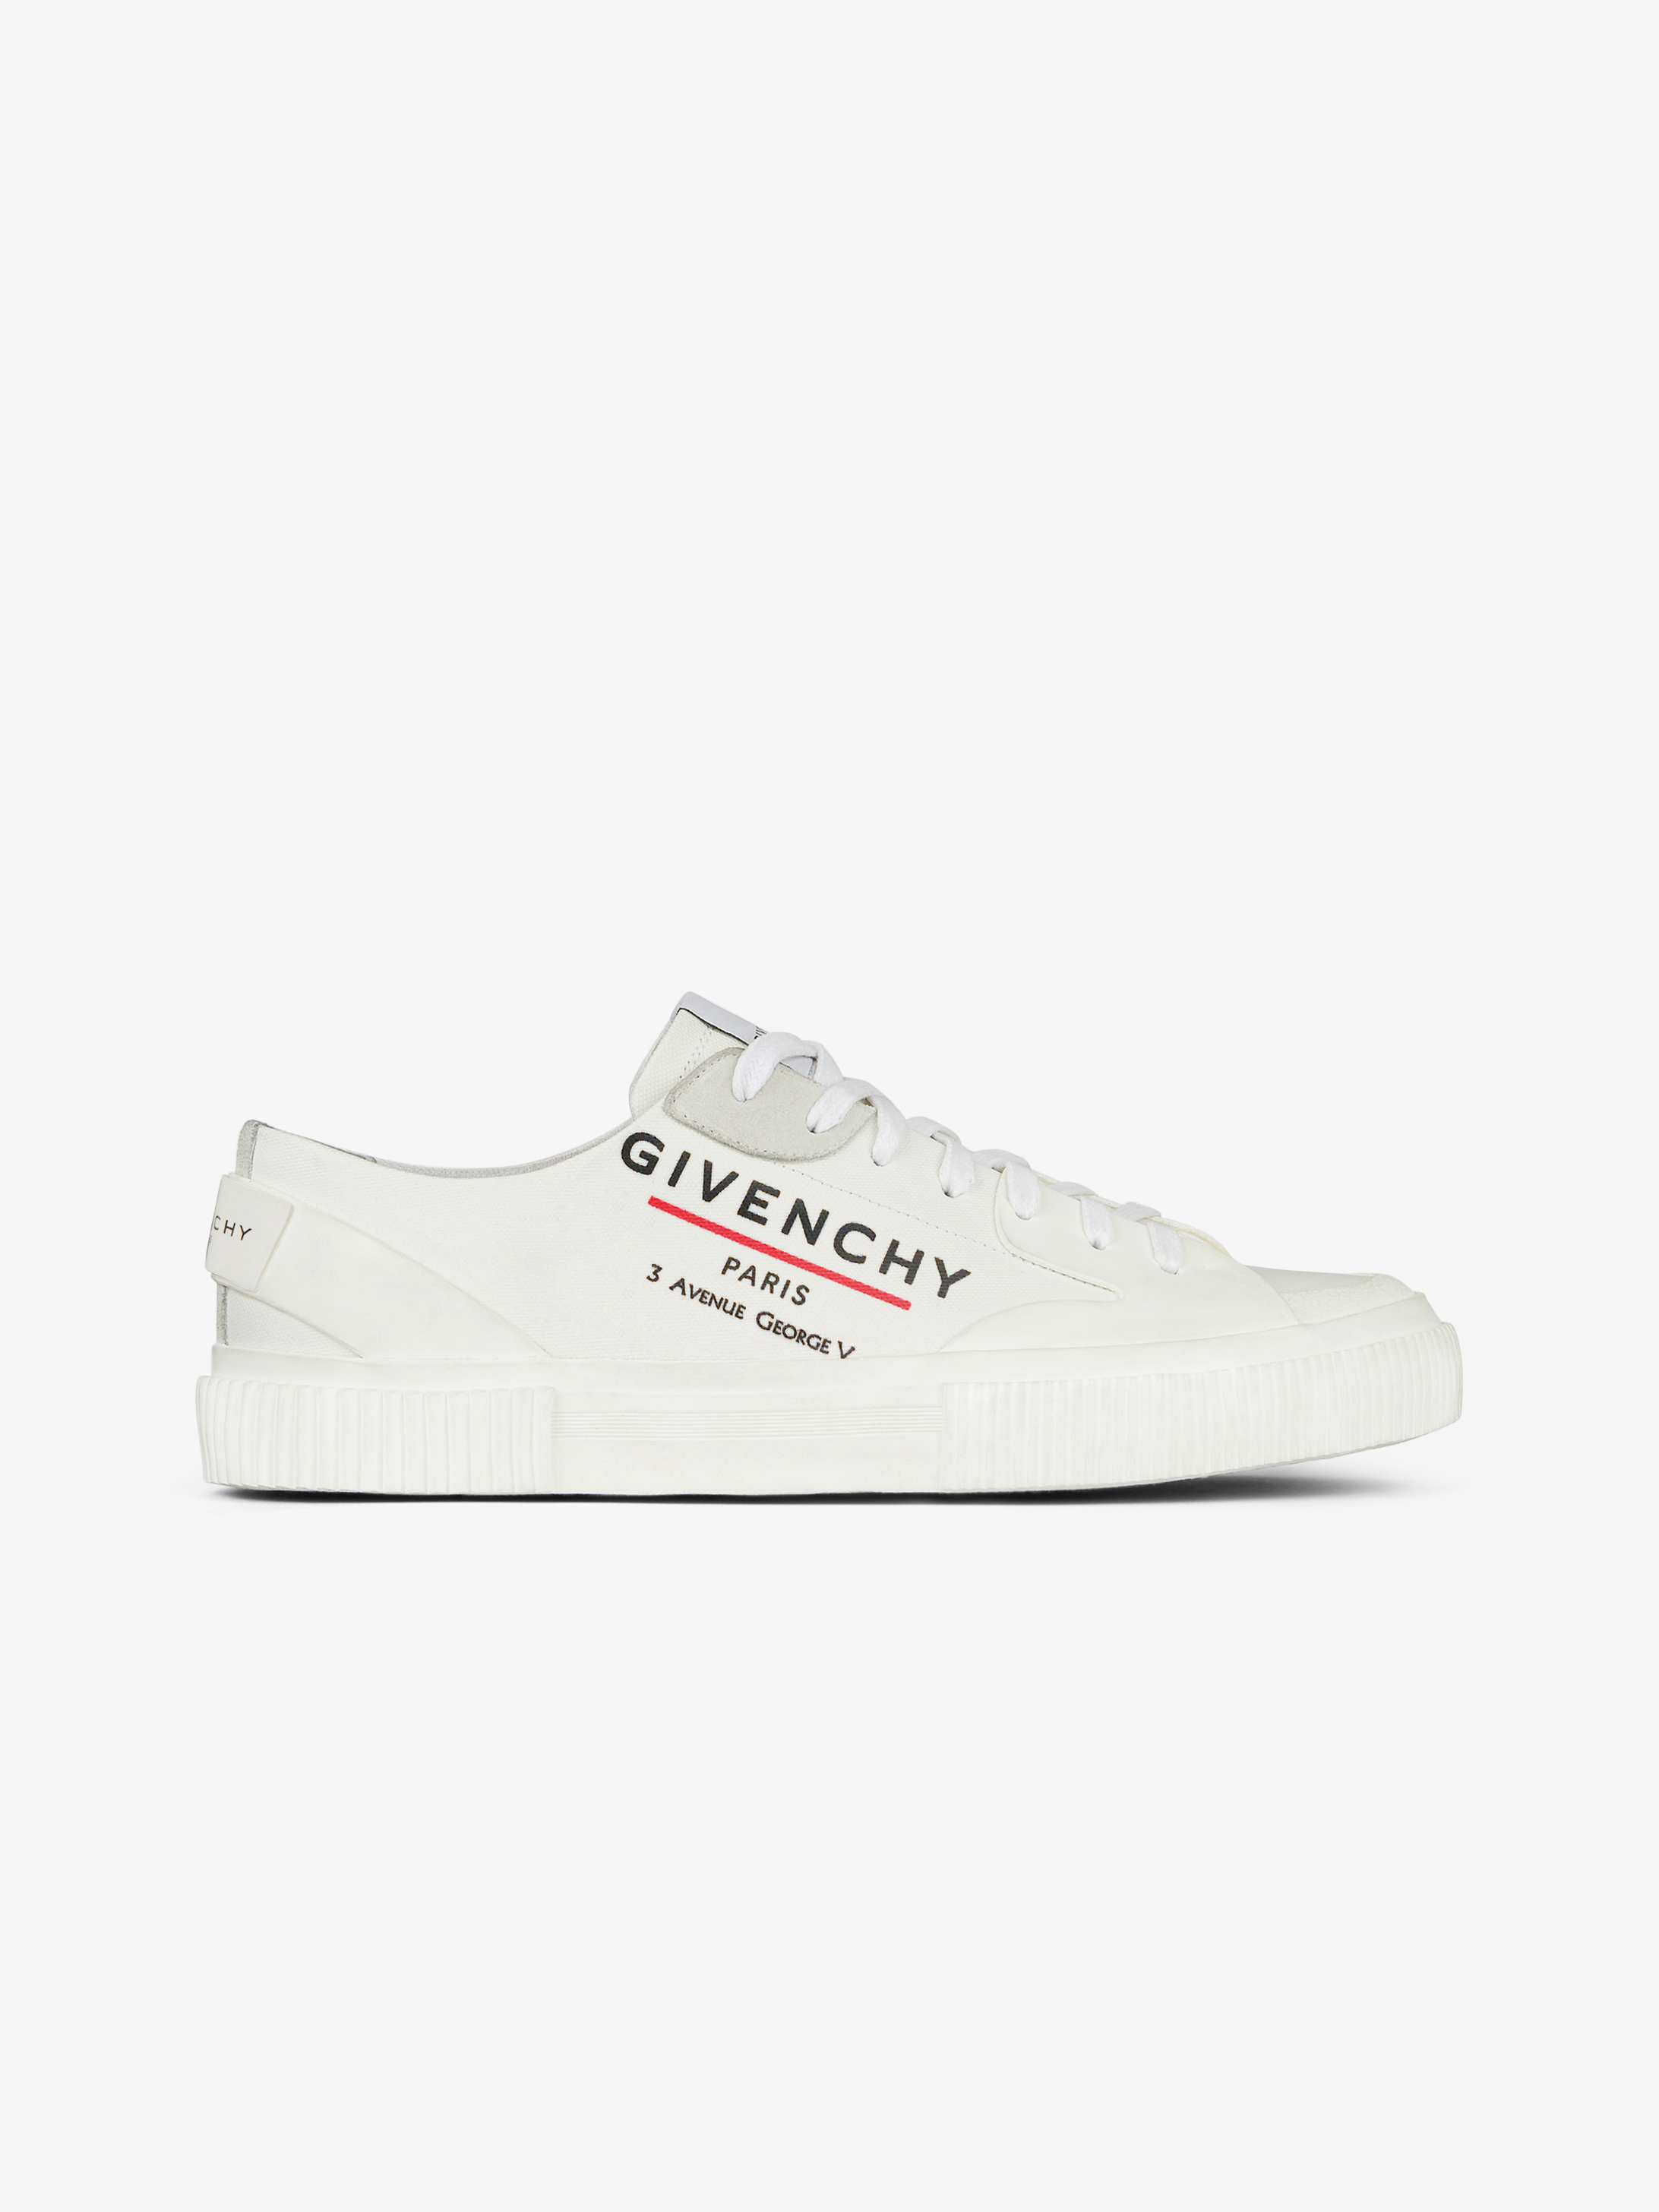 Sneakers basses Tennis Light en toile GIVENCHY Label